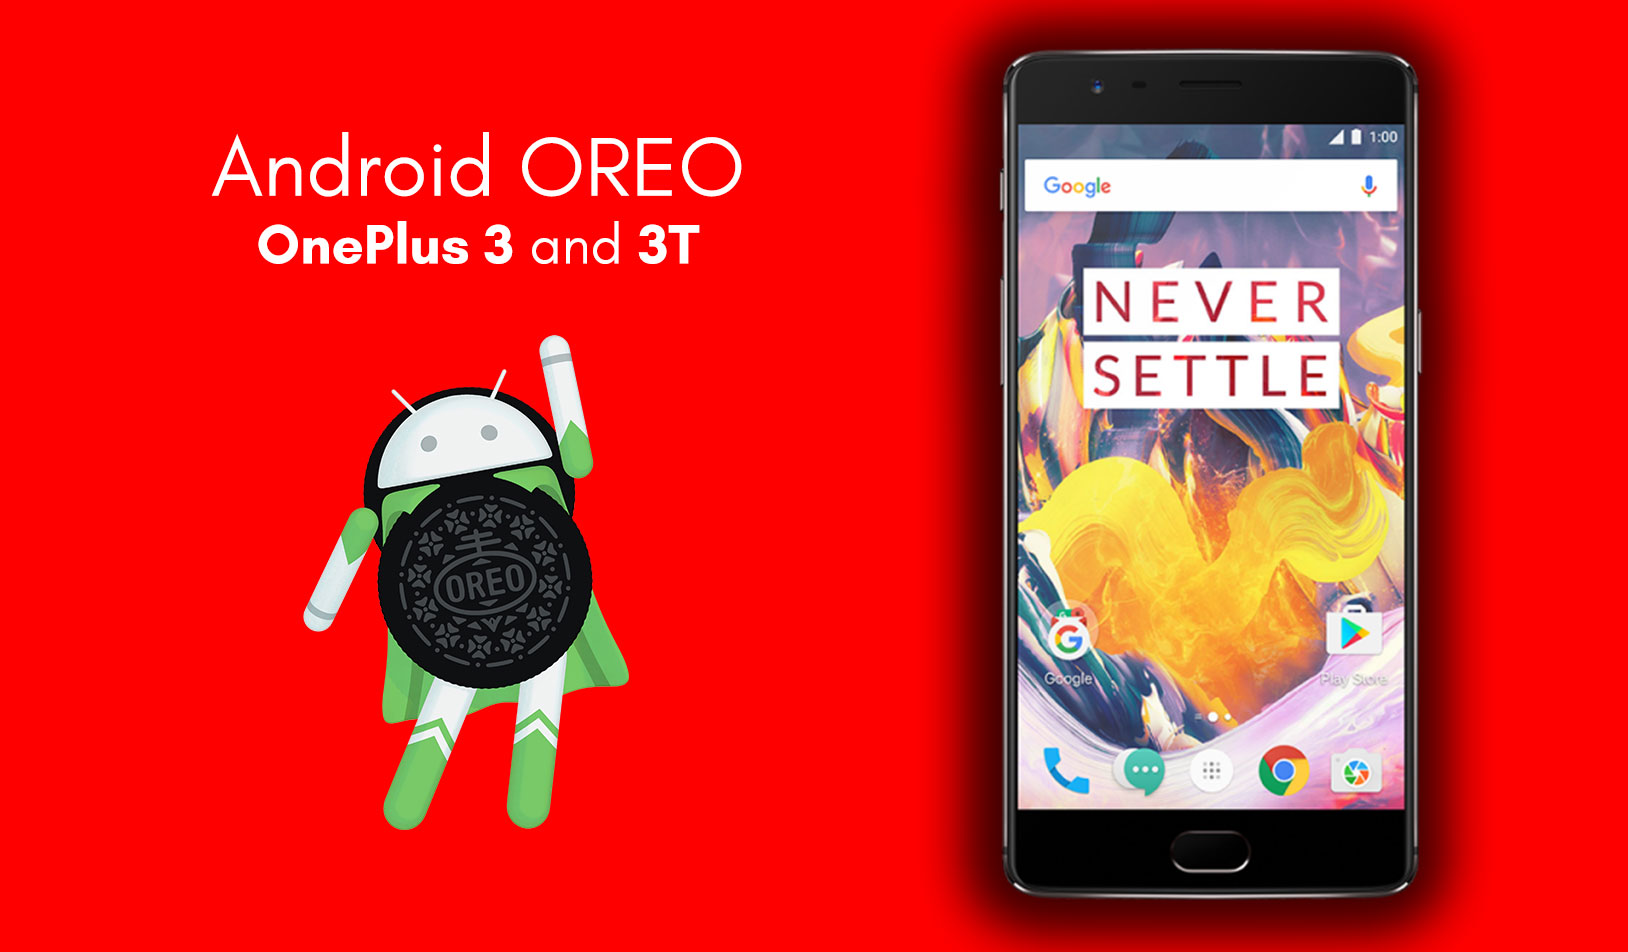 Latest Open Beta for OnePlus 3 and 3T brings much needed bug fixes and improvements